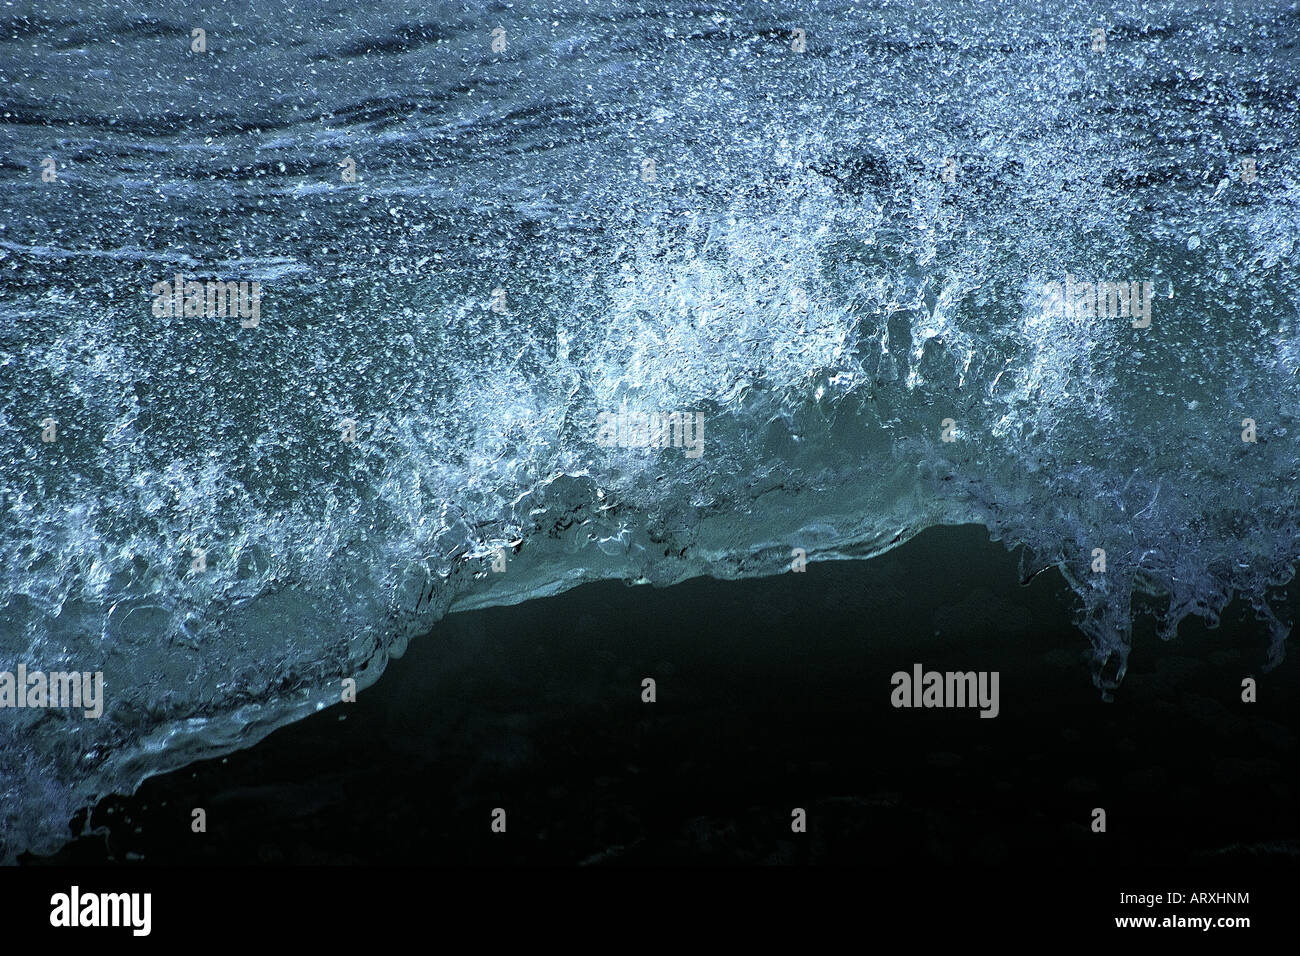 Darkened photograph of a breaking wave. Fast shutter speed stops the action. - Stock Image